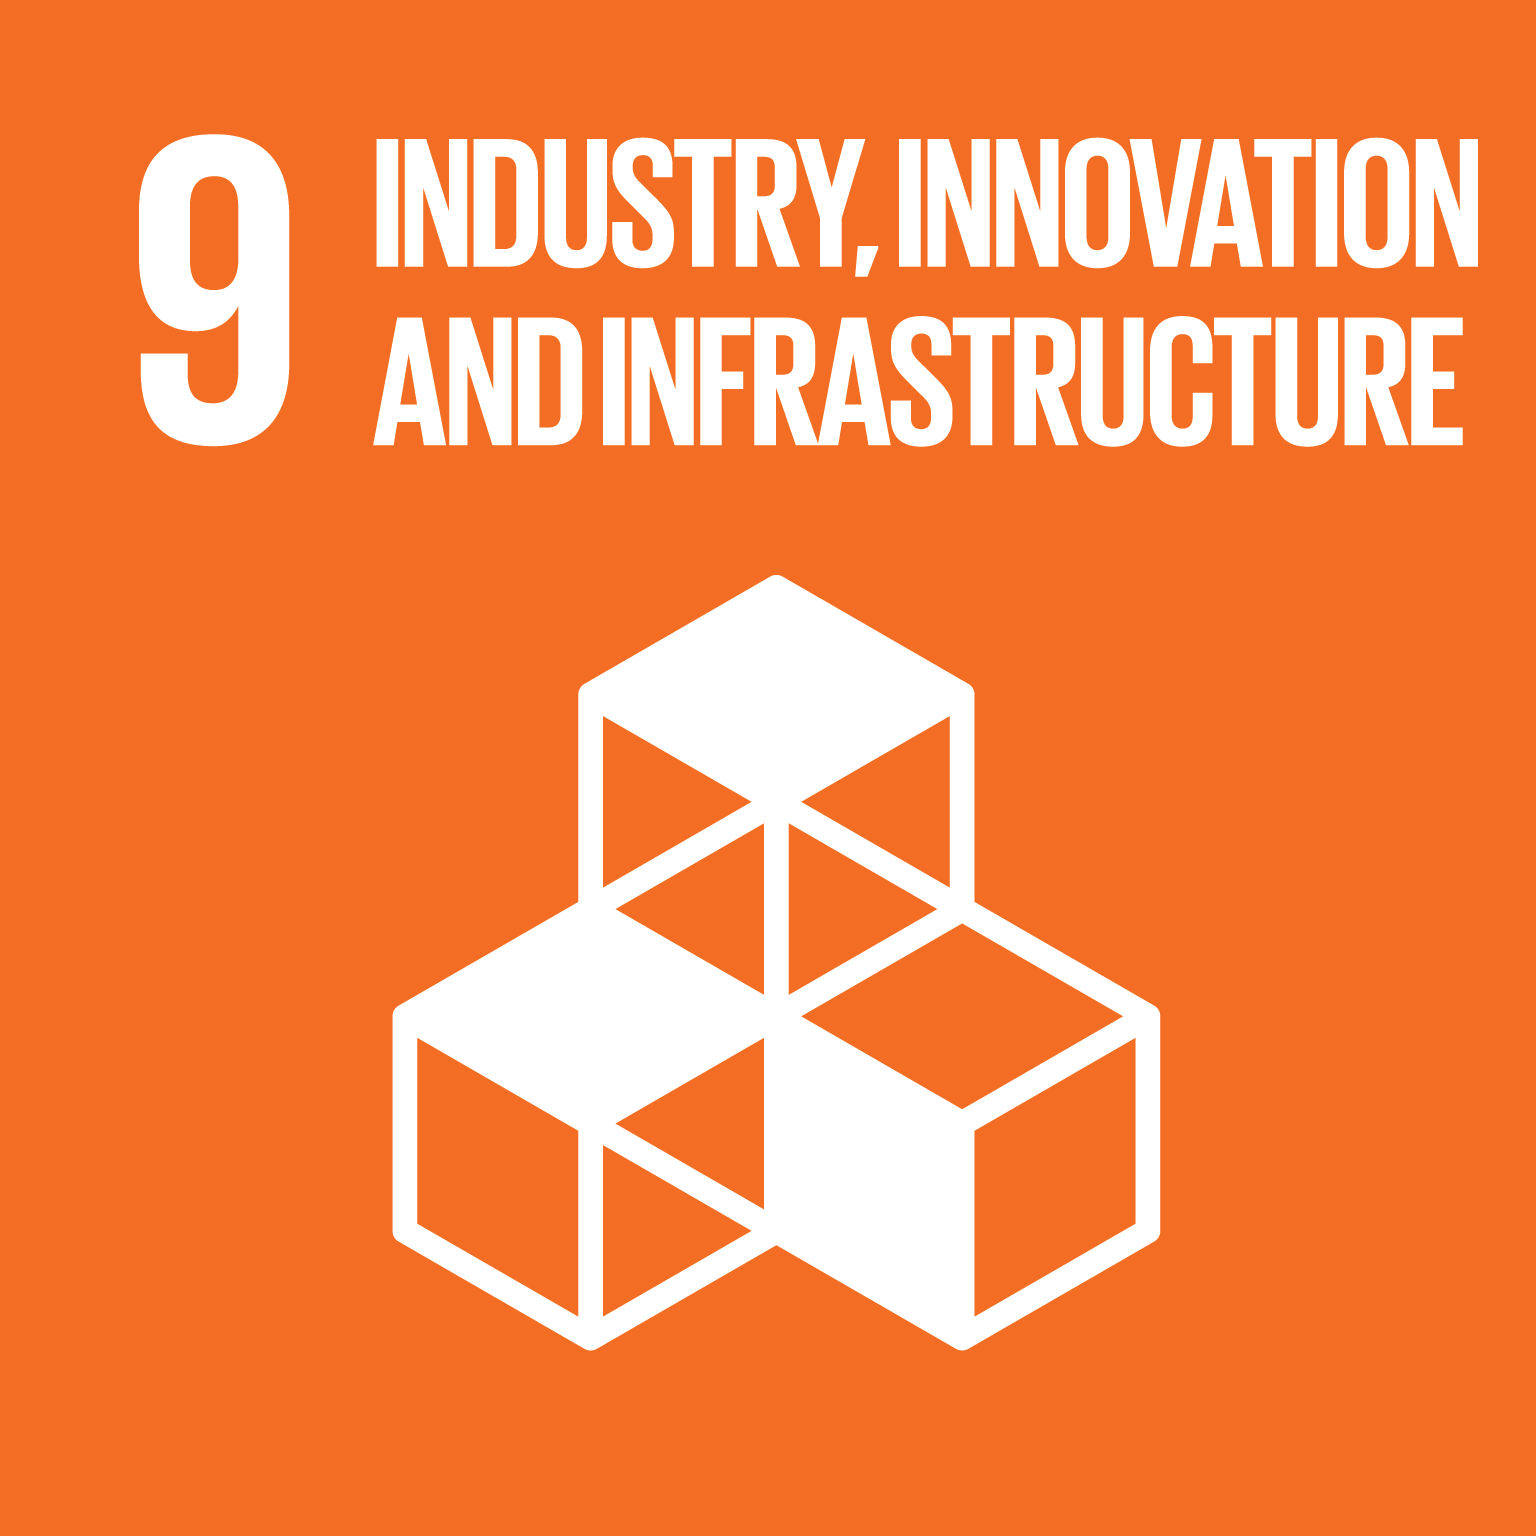 Industry innovation and infrastr